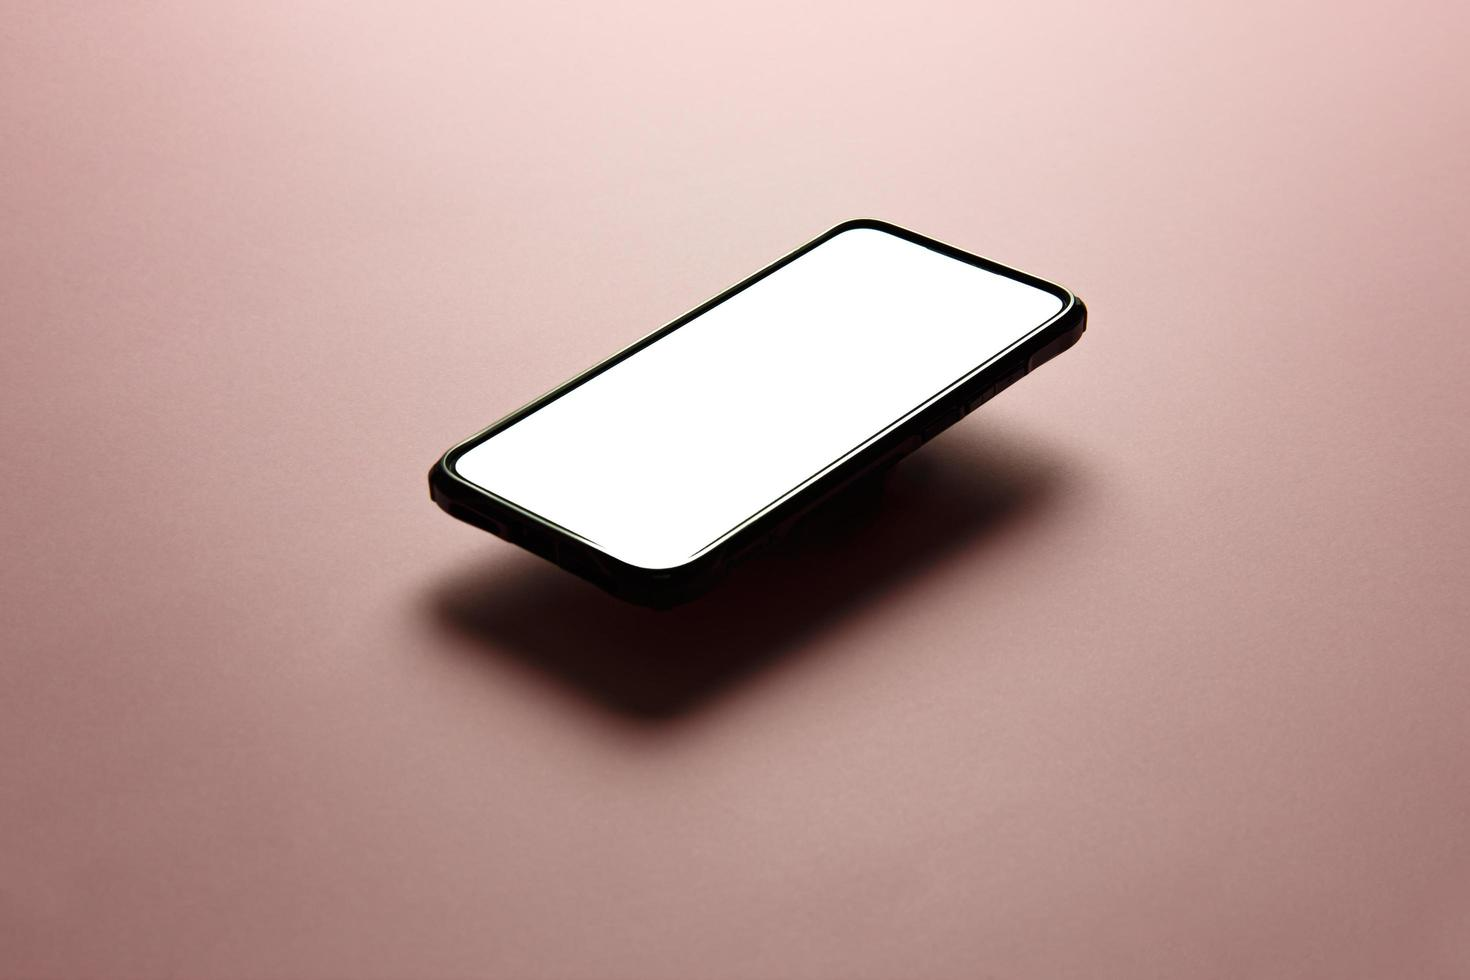 Close-up of a smartphone mock-up photo